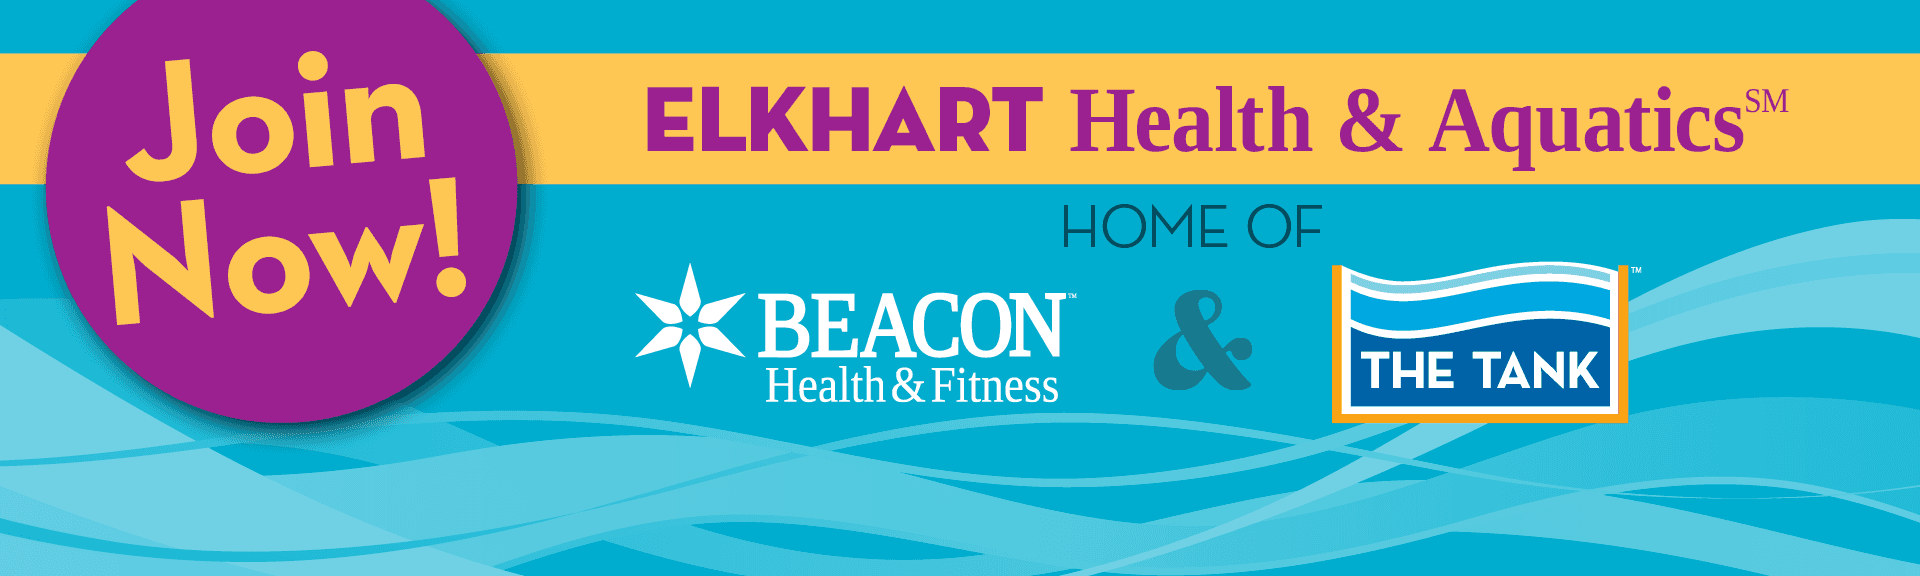 Join Now - Elkhart Health & Aquatics